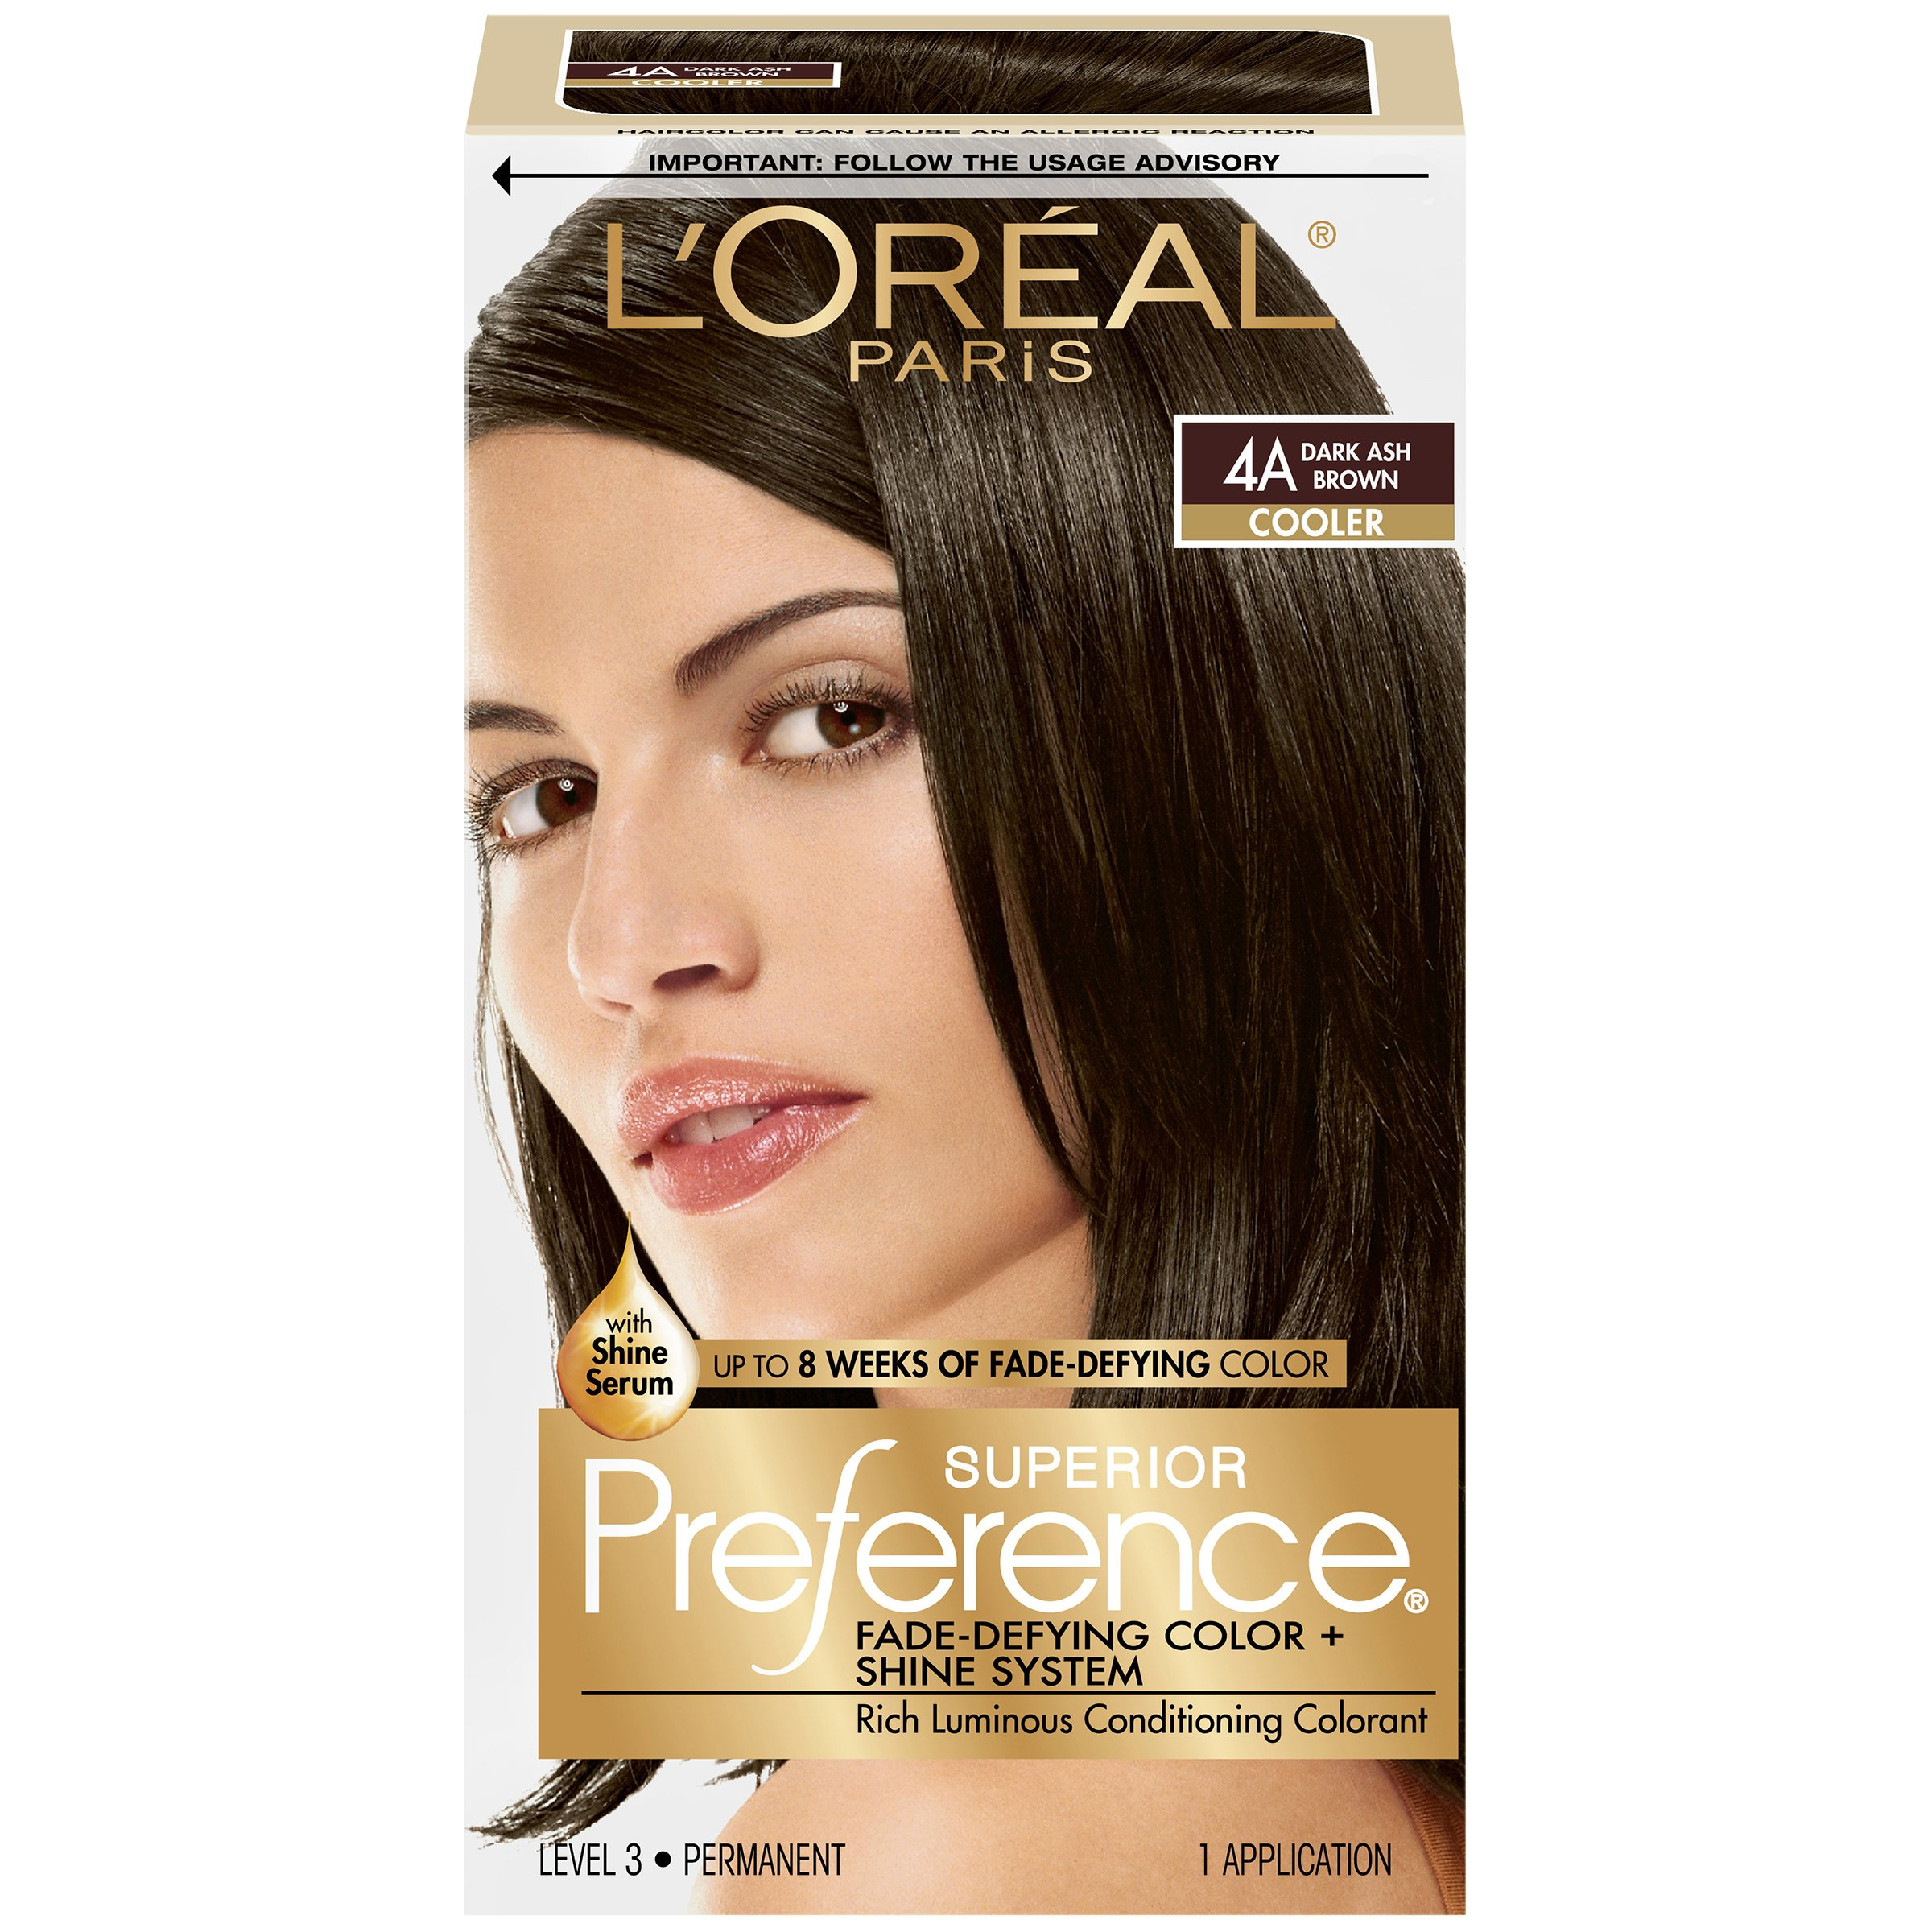 amazoncom lor233al paris excellence cr233me permanent hair